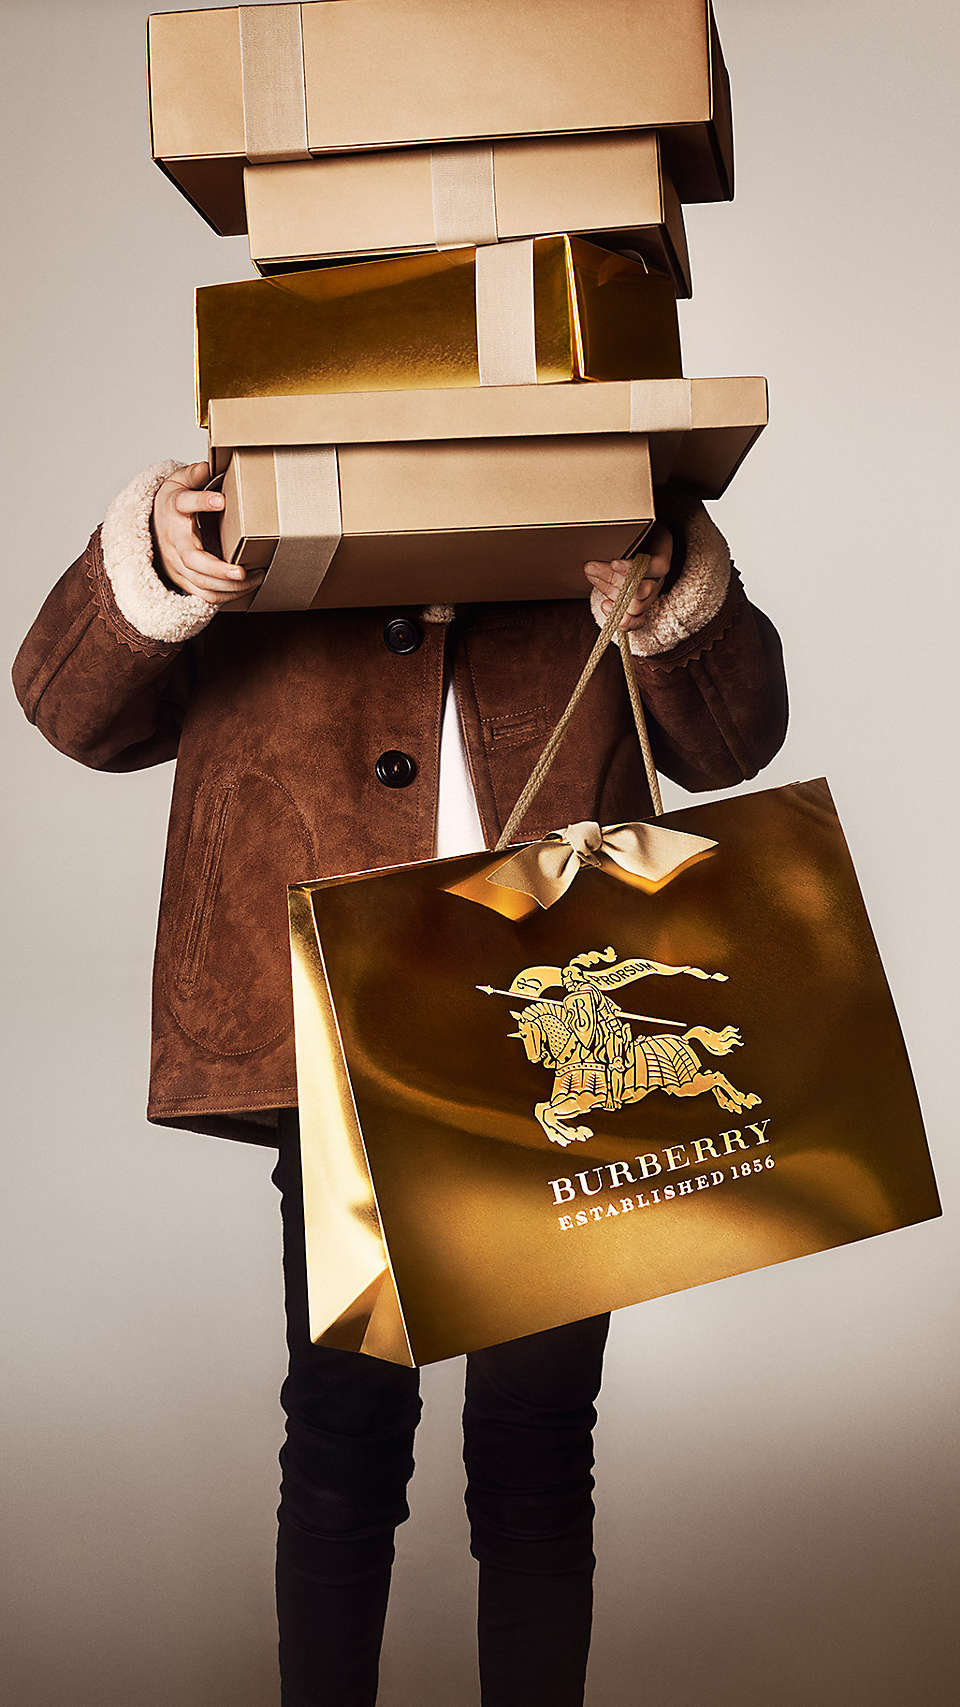 Burberry winter 2014 Christmas campaign